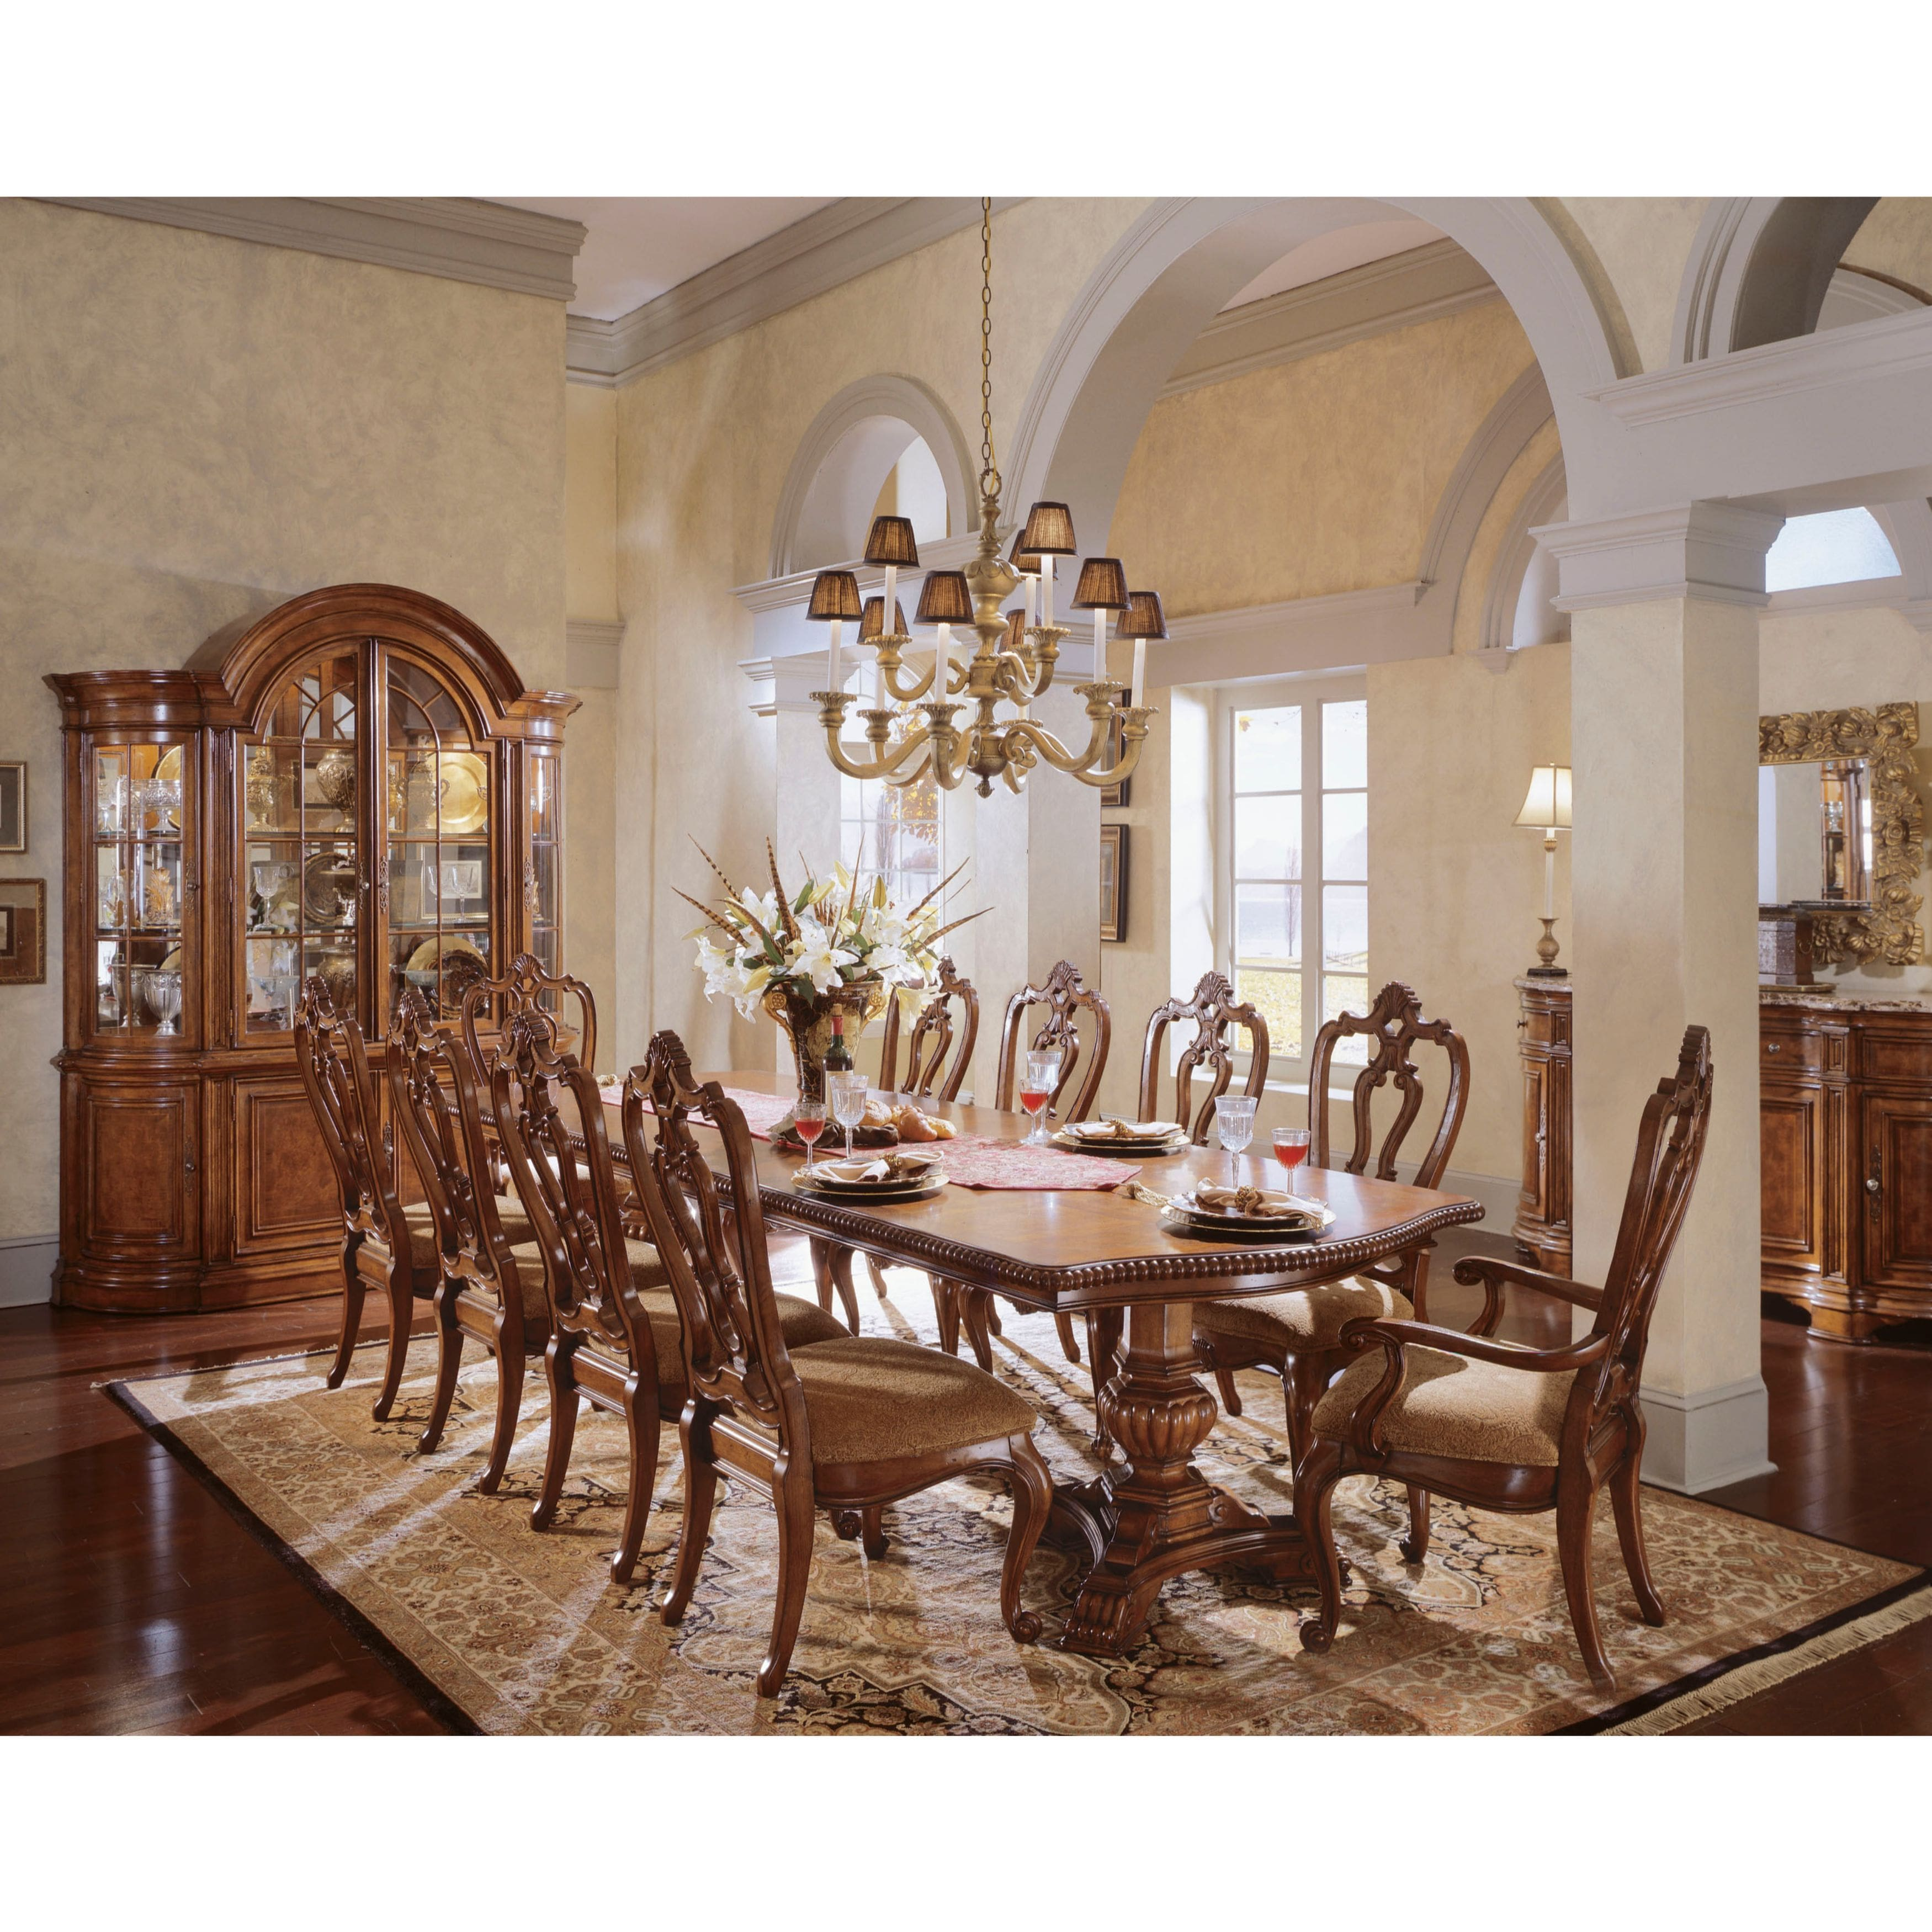 Best Place To Buy Dining Room Furniture: Buy Kitchen & Dining Room Tables Online At Overstock